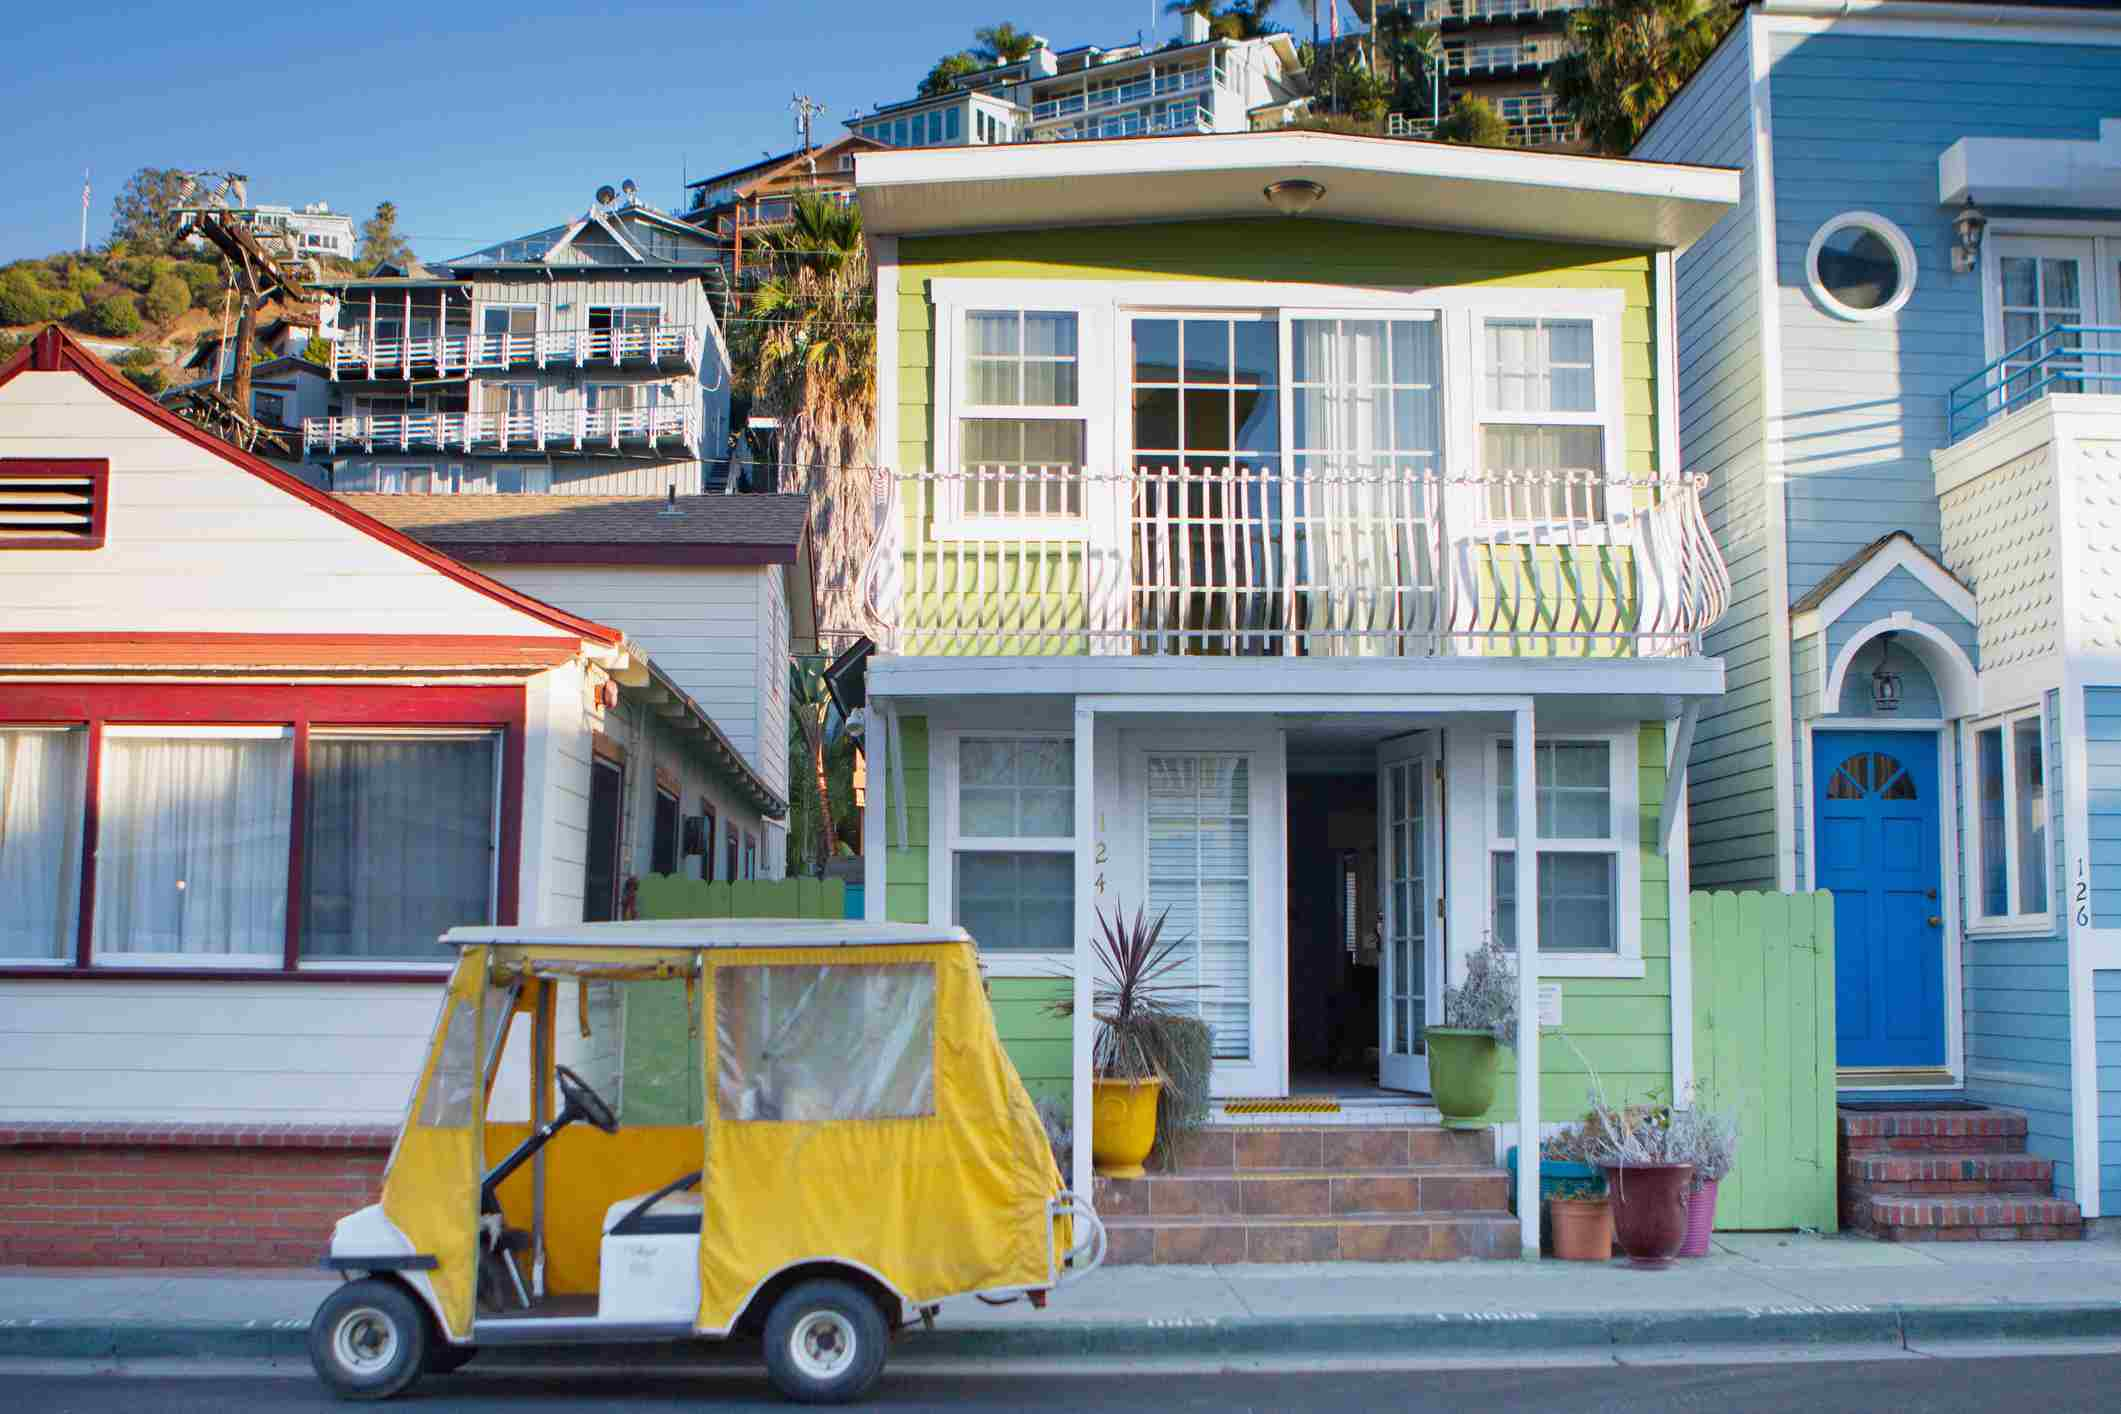 Golf carts and classic and colorful beach cottages are part of the charm of Avalon, Catalina Island.